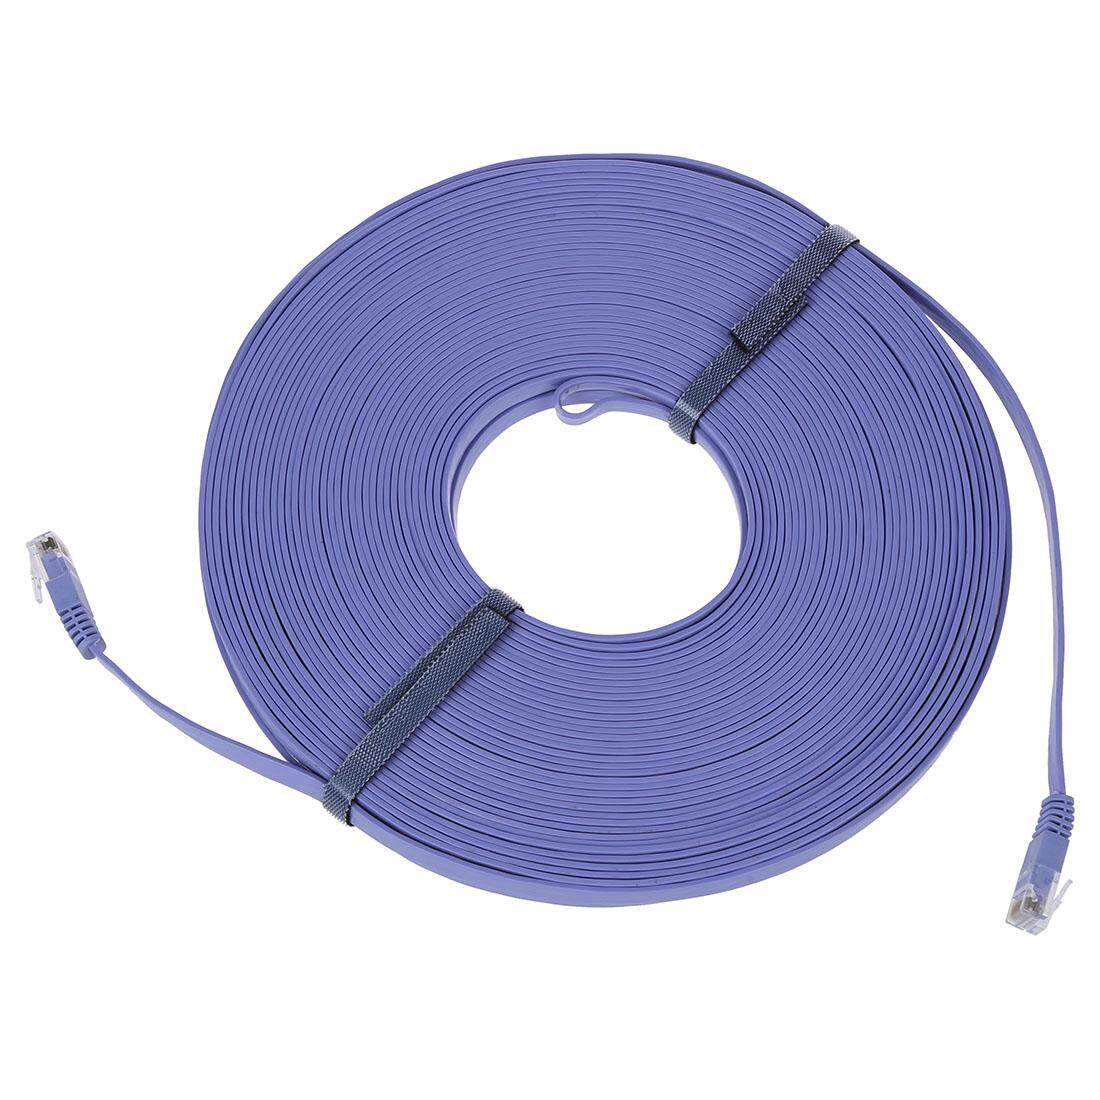 Computer Laptop Ethernet Cables For The Best Prices In Malaysia Wire Installer Cat6 Cat7 Wiring Office 98ft 30m Cat 6 Flat Utp Network Cable Rj45 Patch Lan Cord Blue